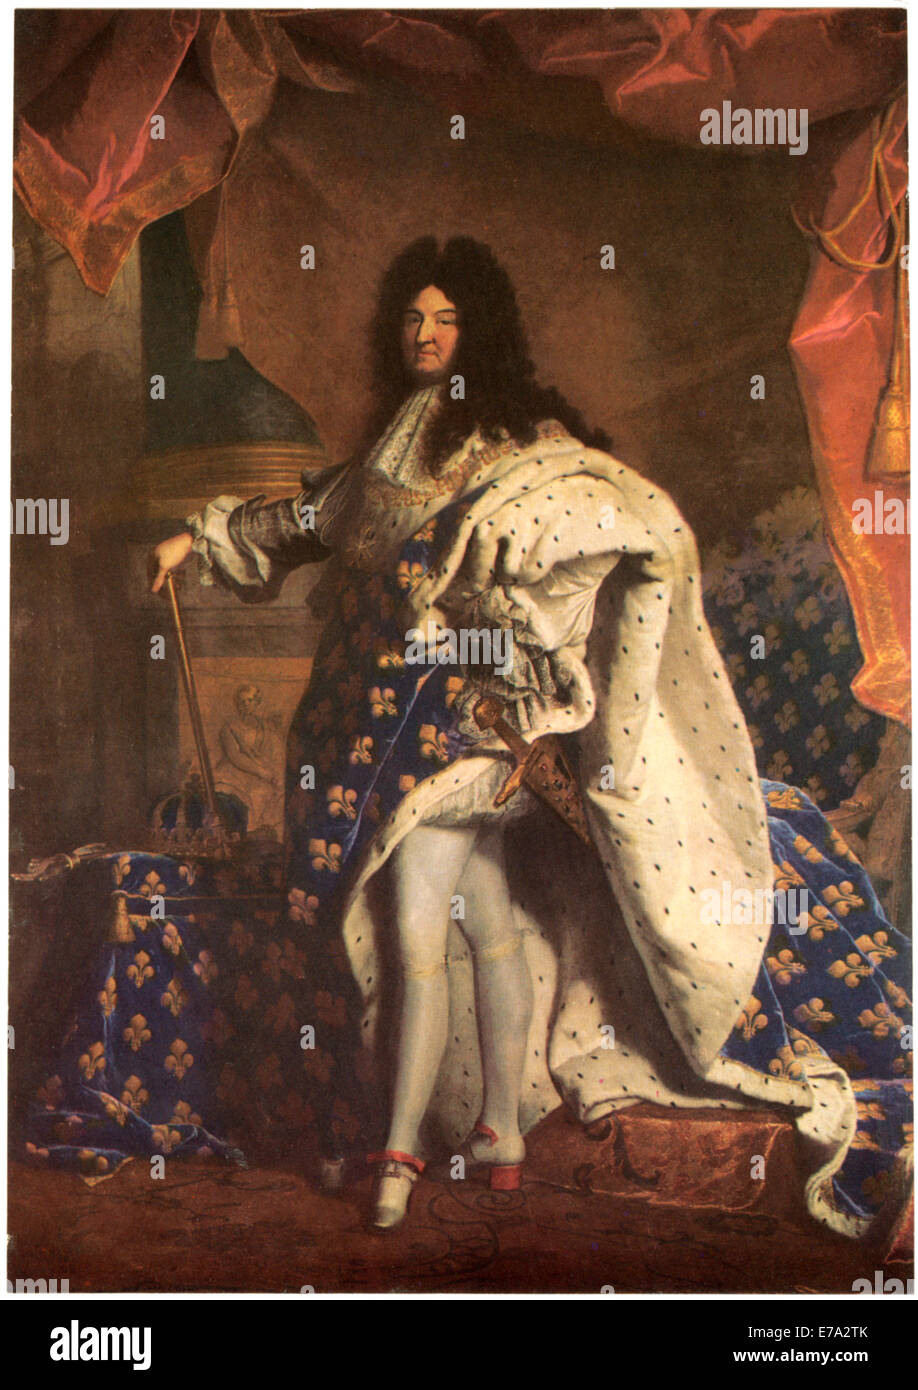 Louis XIV (1638-1715), King of France and Navarre, Painting by Hyacinth Rigaud, 1701 Stock Photo